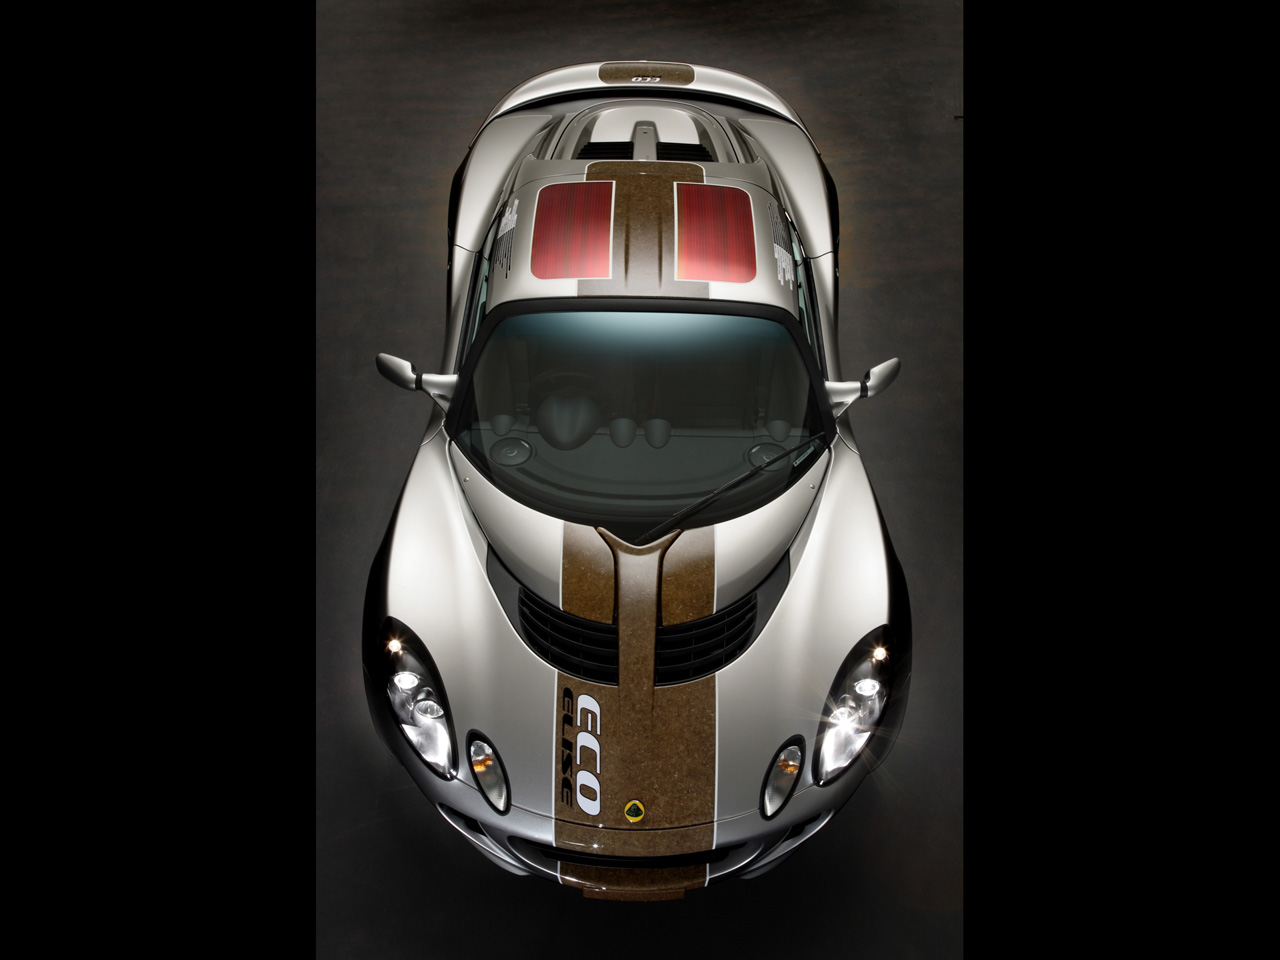 2008-Lotus-Eco-Elise-Front-Top-1280x960.jpg